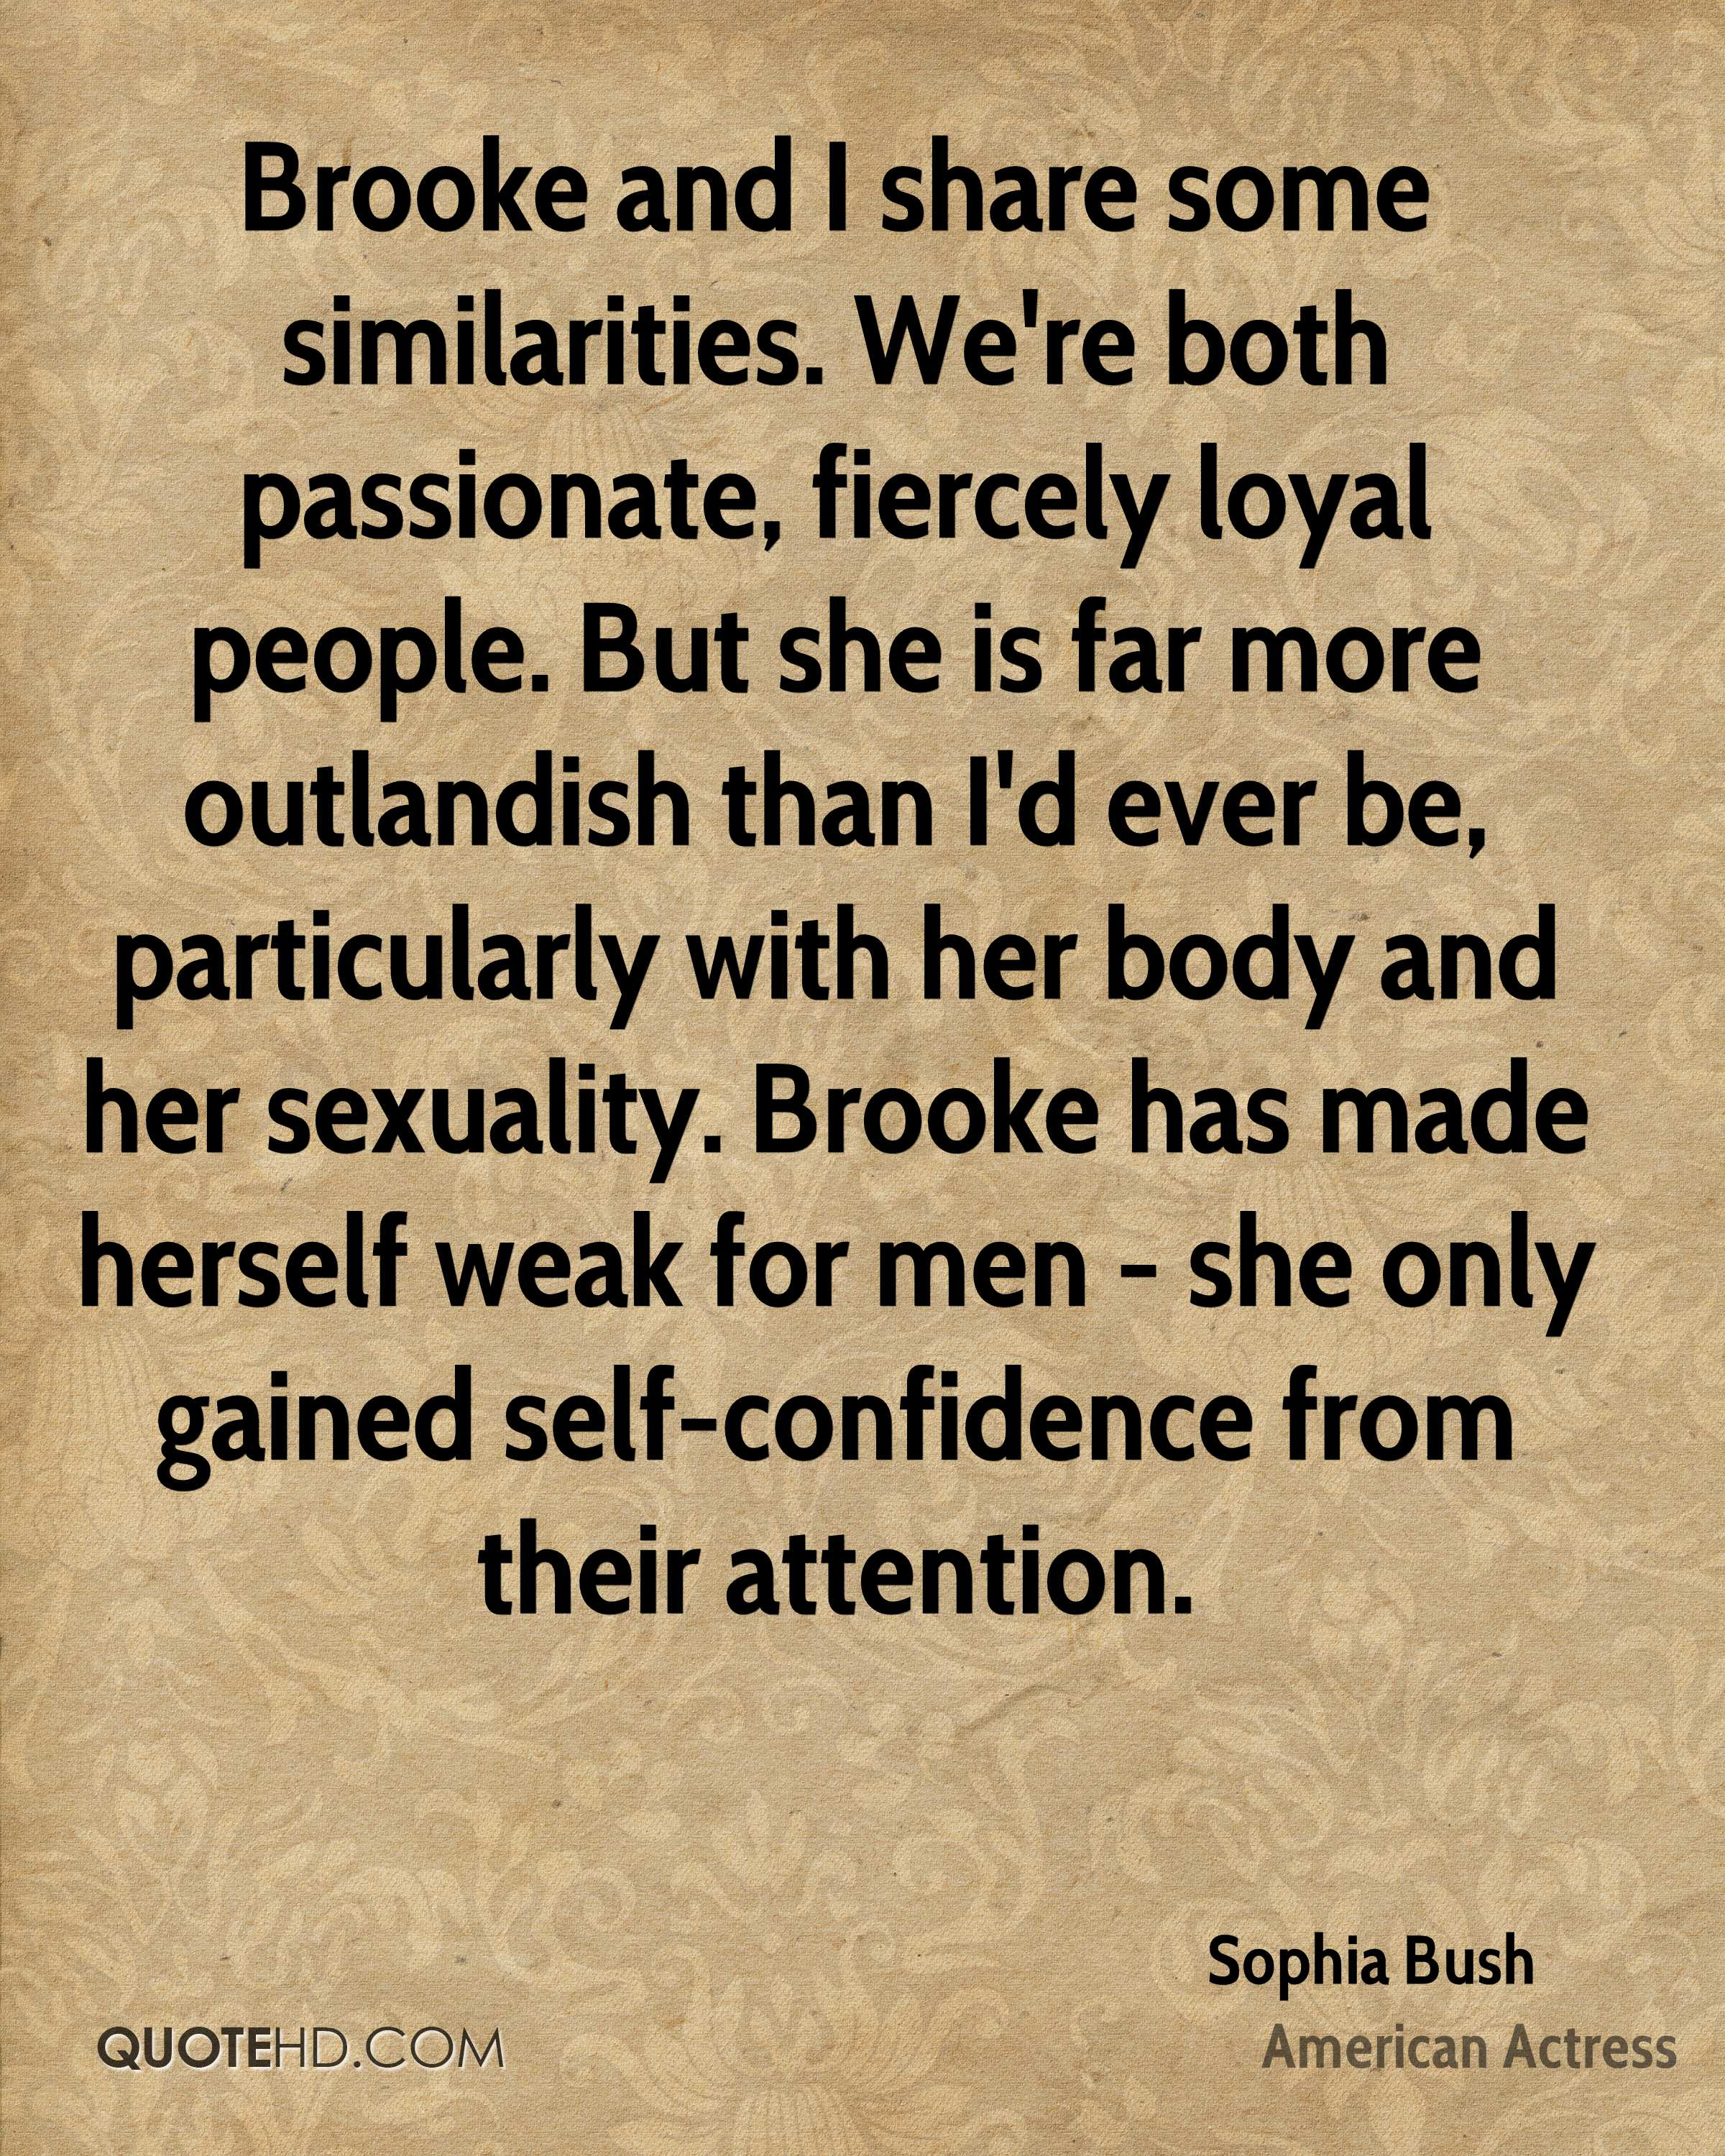 Brooke and I share some similarities. We're both passionate, fiercely loyal people. But she is far more outlandish than I'd ever be, particularly with her body and her sexuality. Brooke has made herself weak for men - she only gained self-confidence from their attention.